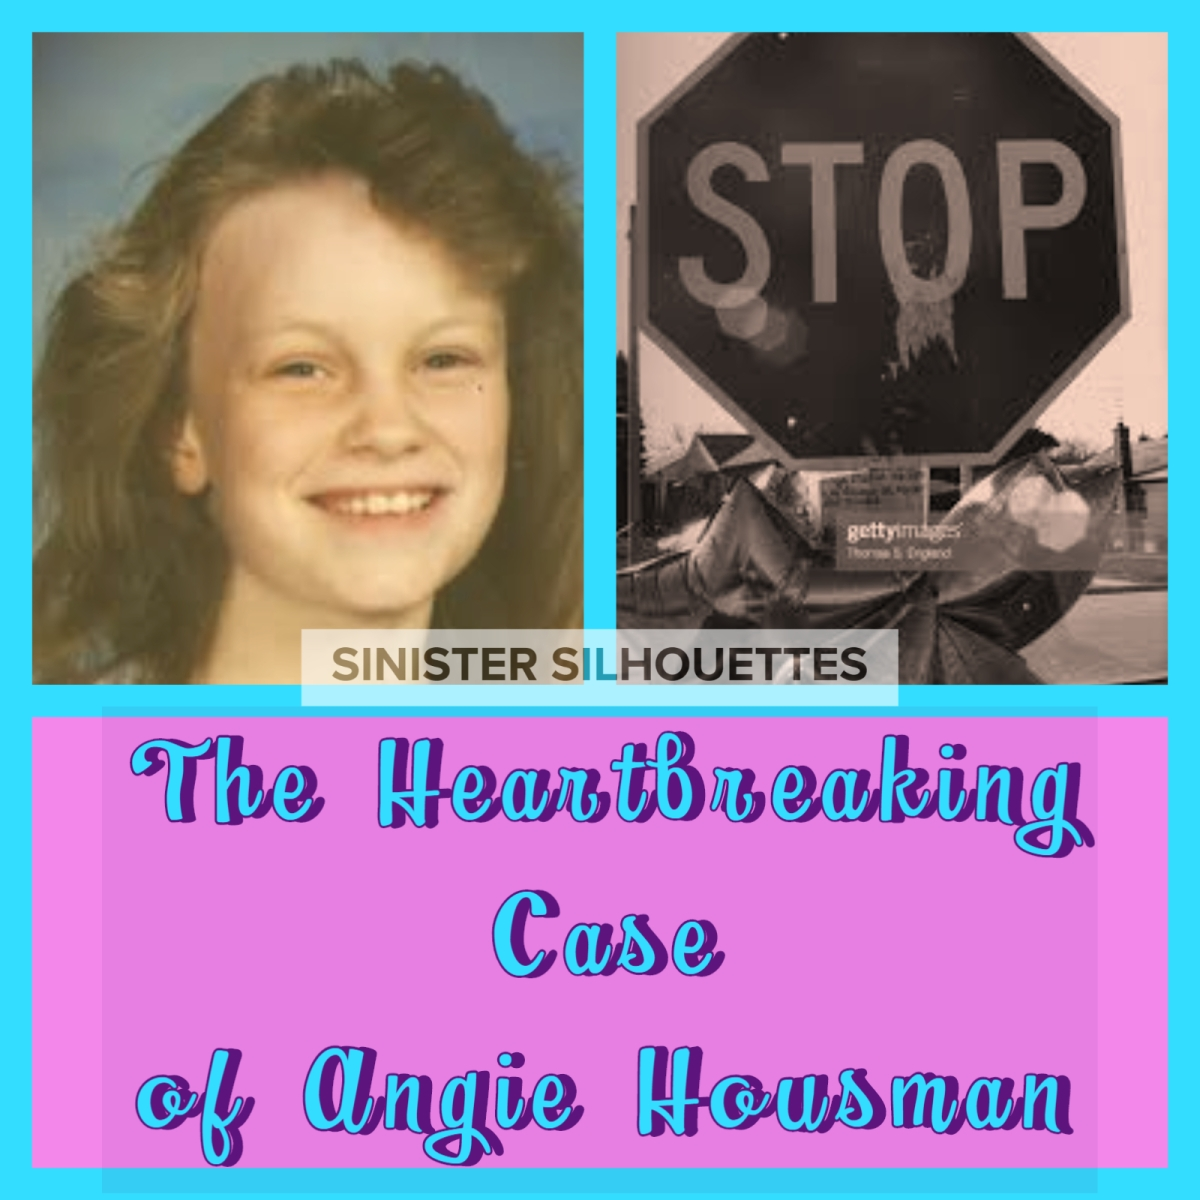 The Heartbreaking Case of Angie Housman